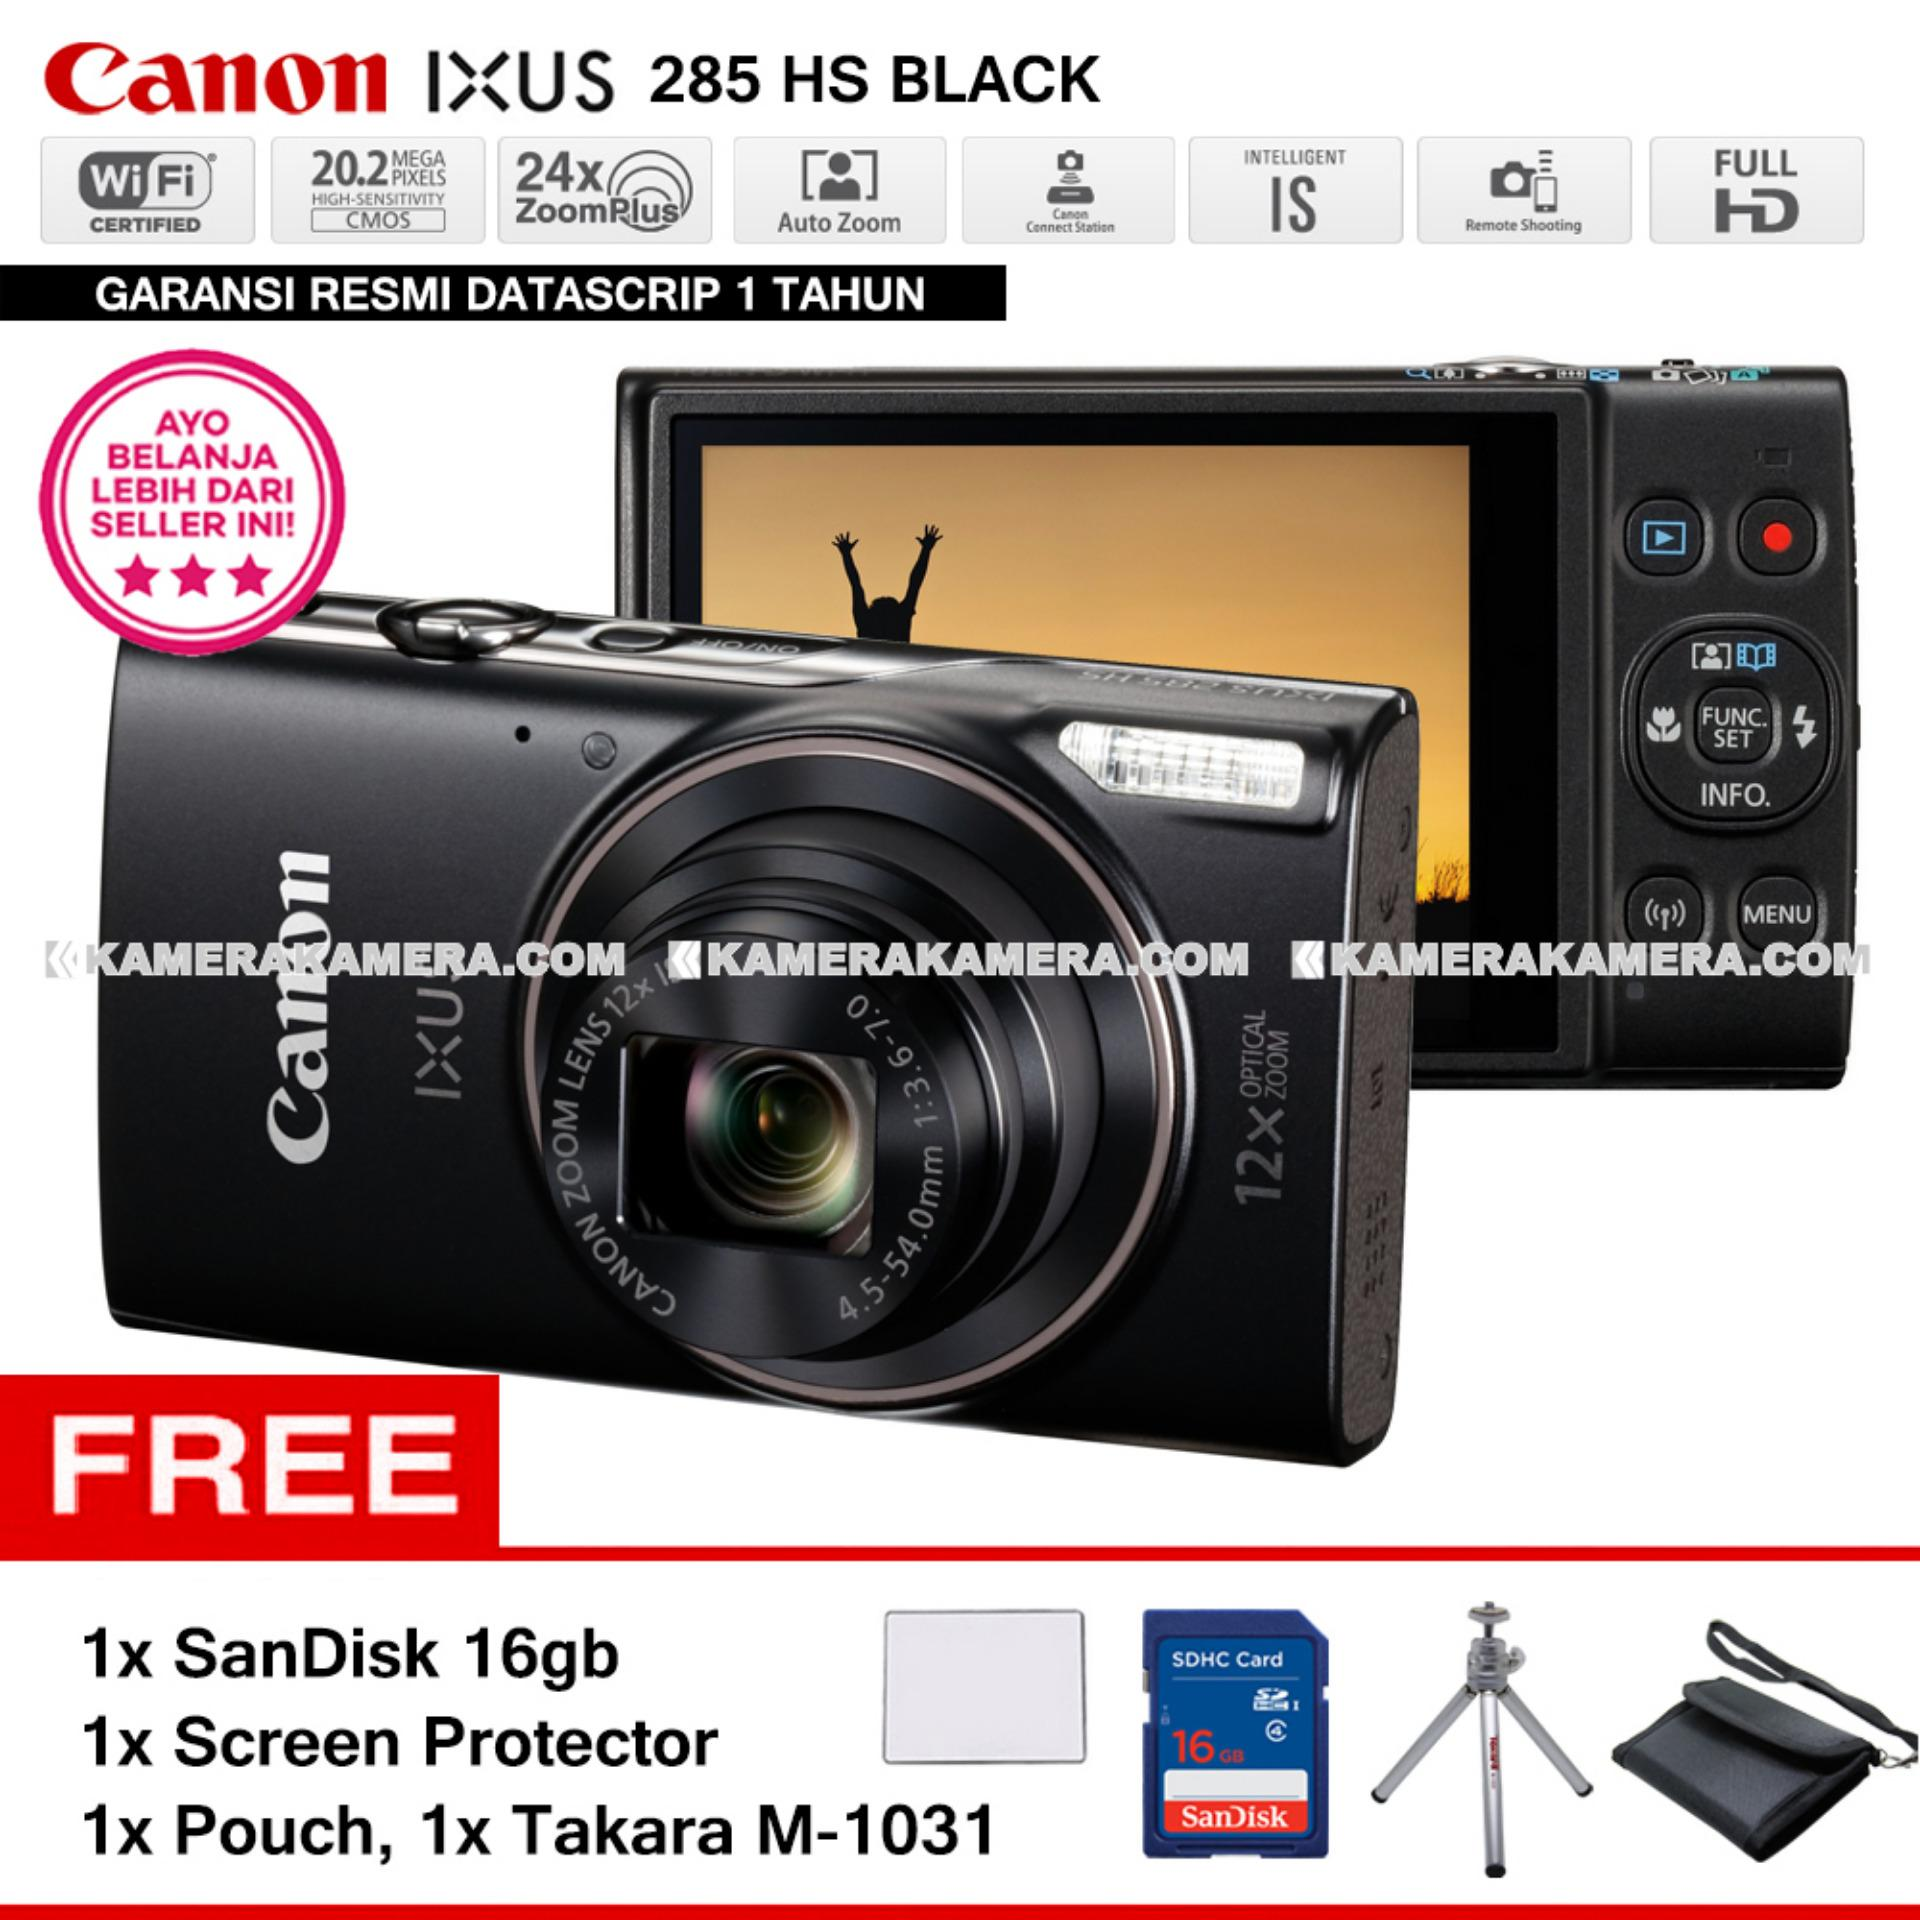 Beli Canon Ixus 285 Hs Black Wifi 20 2Mp Full Hd Pocket Camera Resmi Datascrip Sandisk 8Gb Screen Protector Pocket Case Takara M 1031 Cicilan